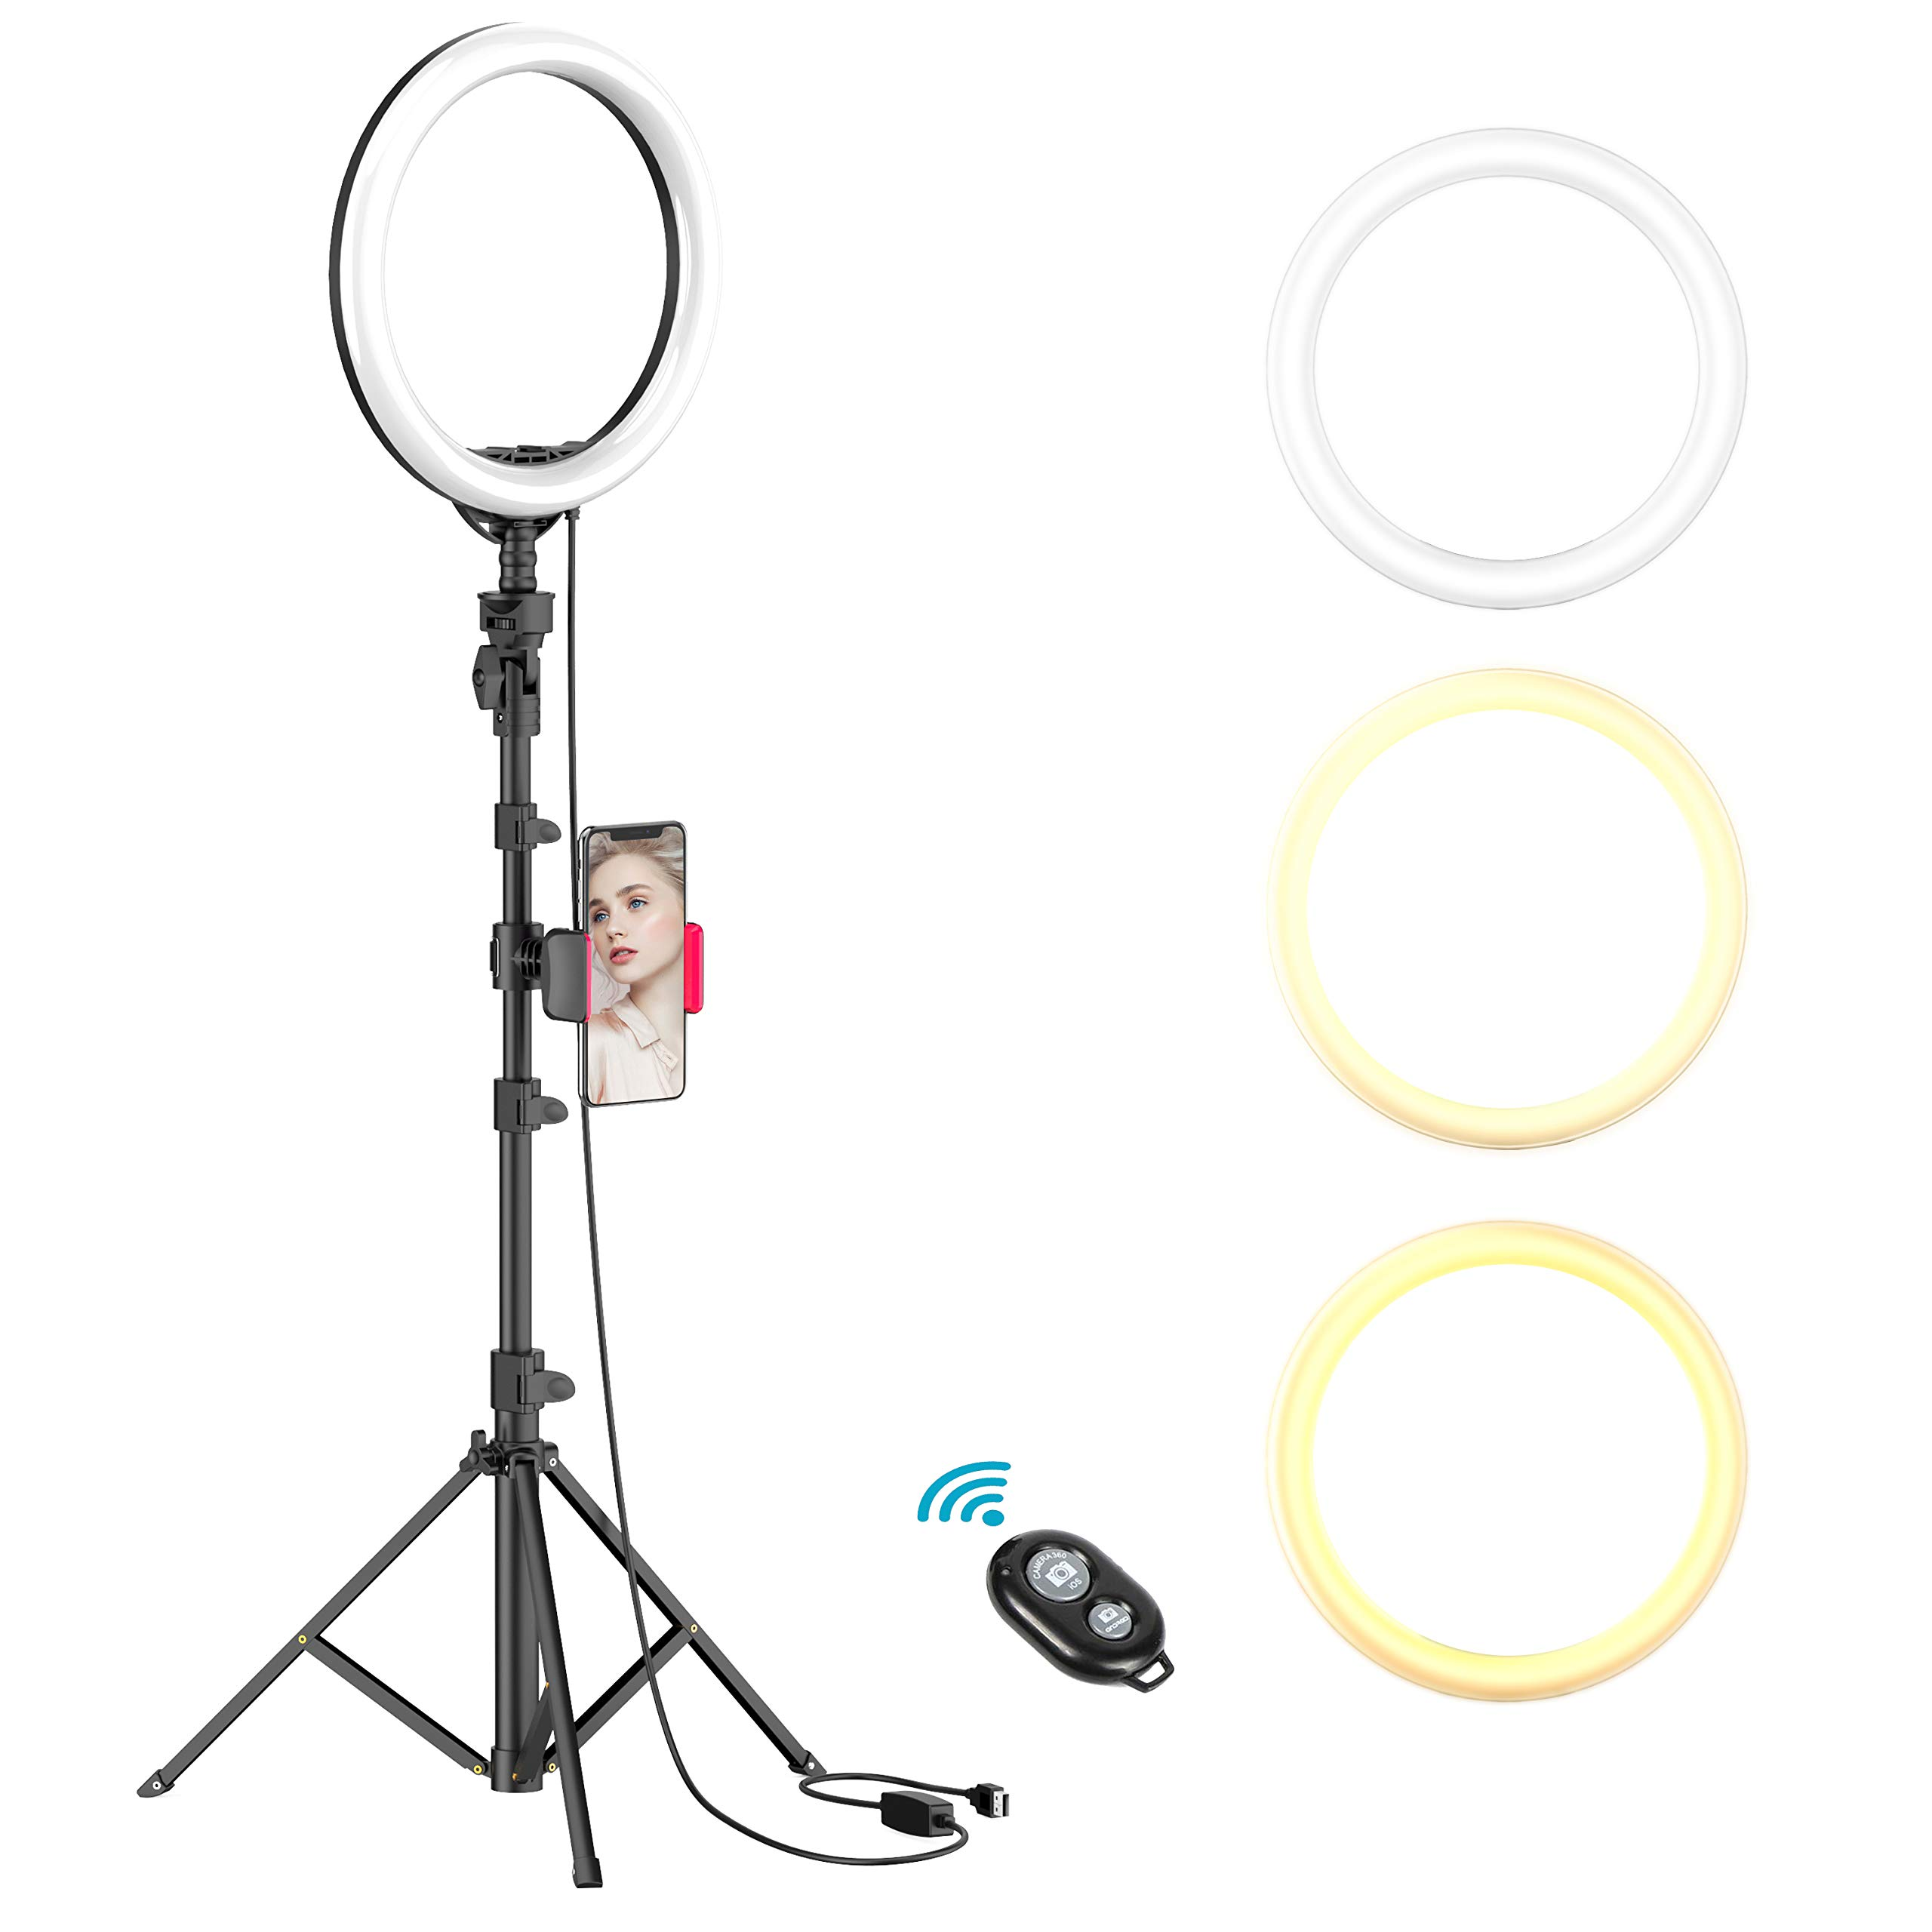 10'' Selfie Ring Light with Tripod Stand & Cell Phone Holder for Live Stream/Makeup, Dimmable Led Camera Beuty Ringlight for YouTube Video/Photography Compatible with iPhone and Android Phone(UPGRADED) by Erligpowht